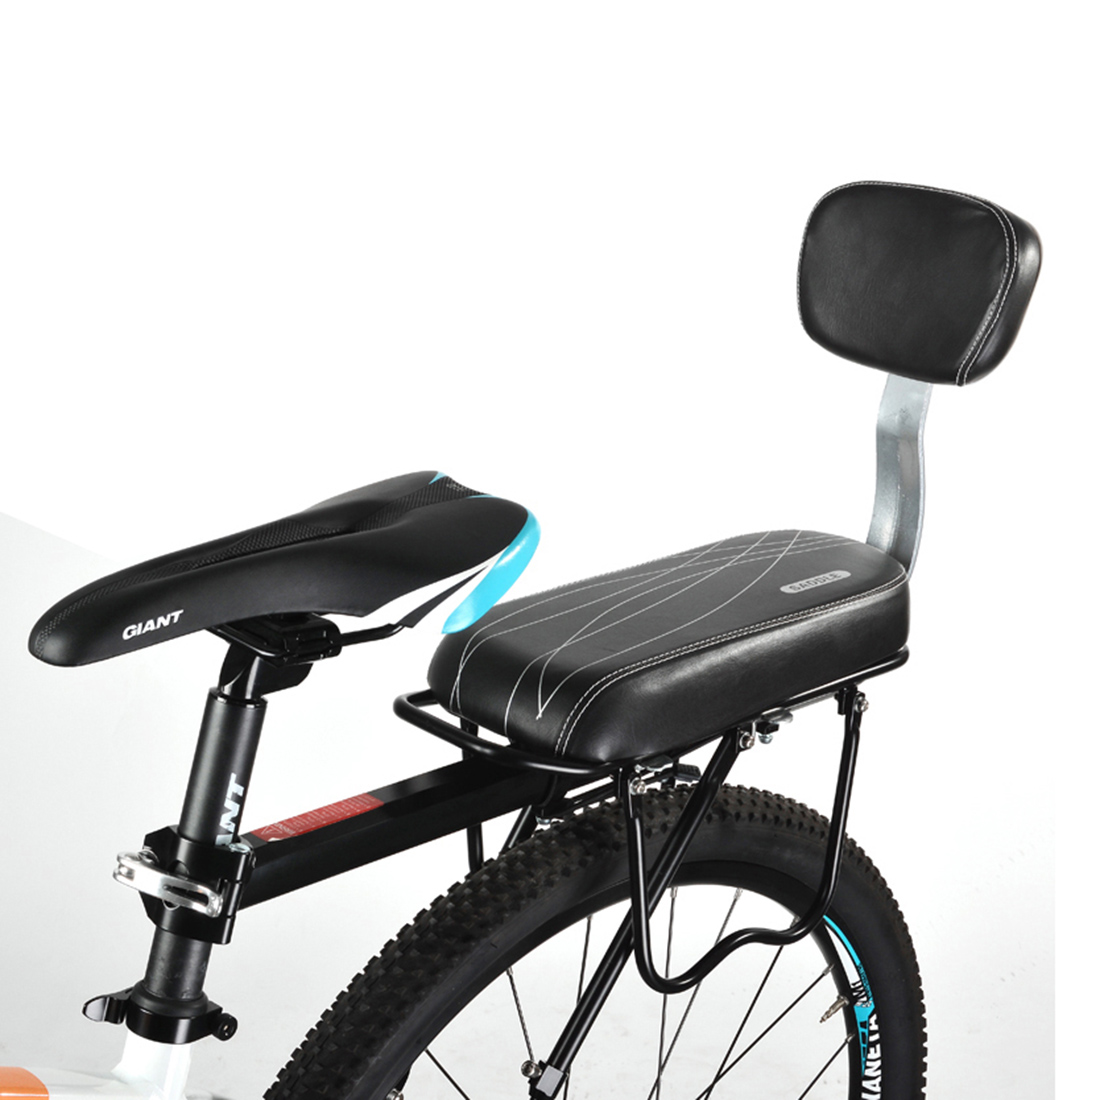 The Bike Chair Cast Iron Aliexpress Buy Bicycle Saddle Child Back Seat